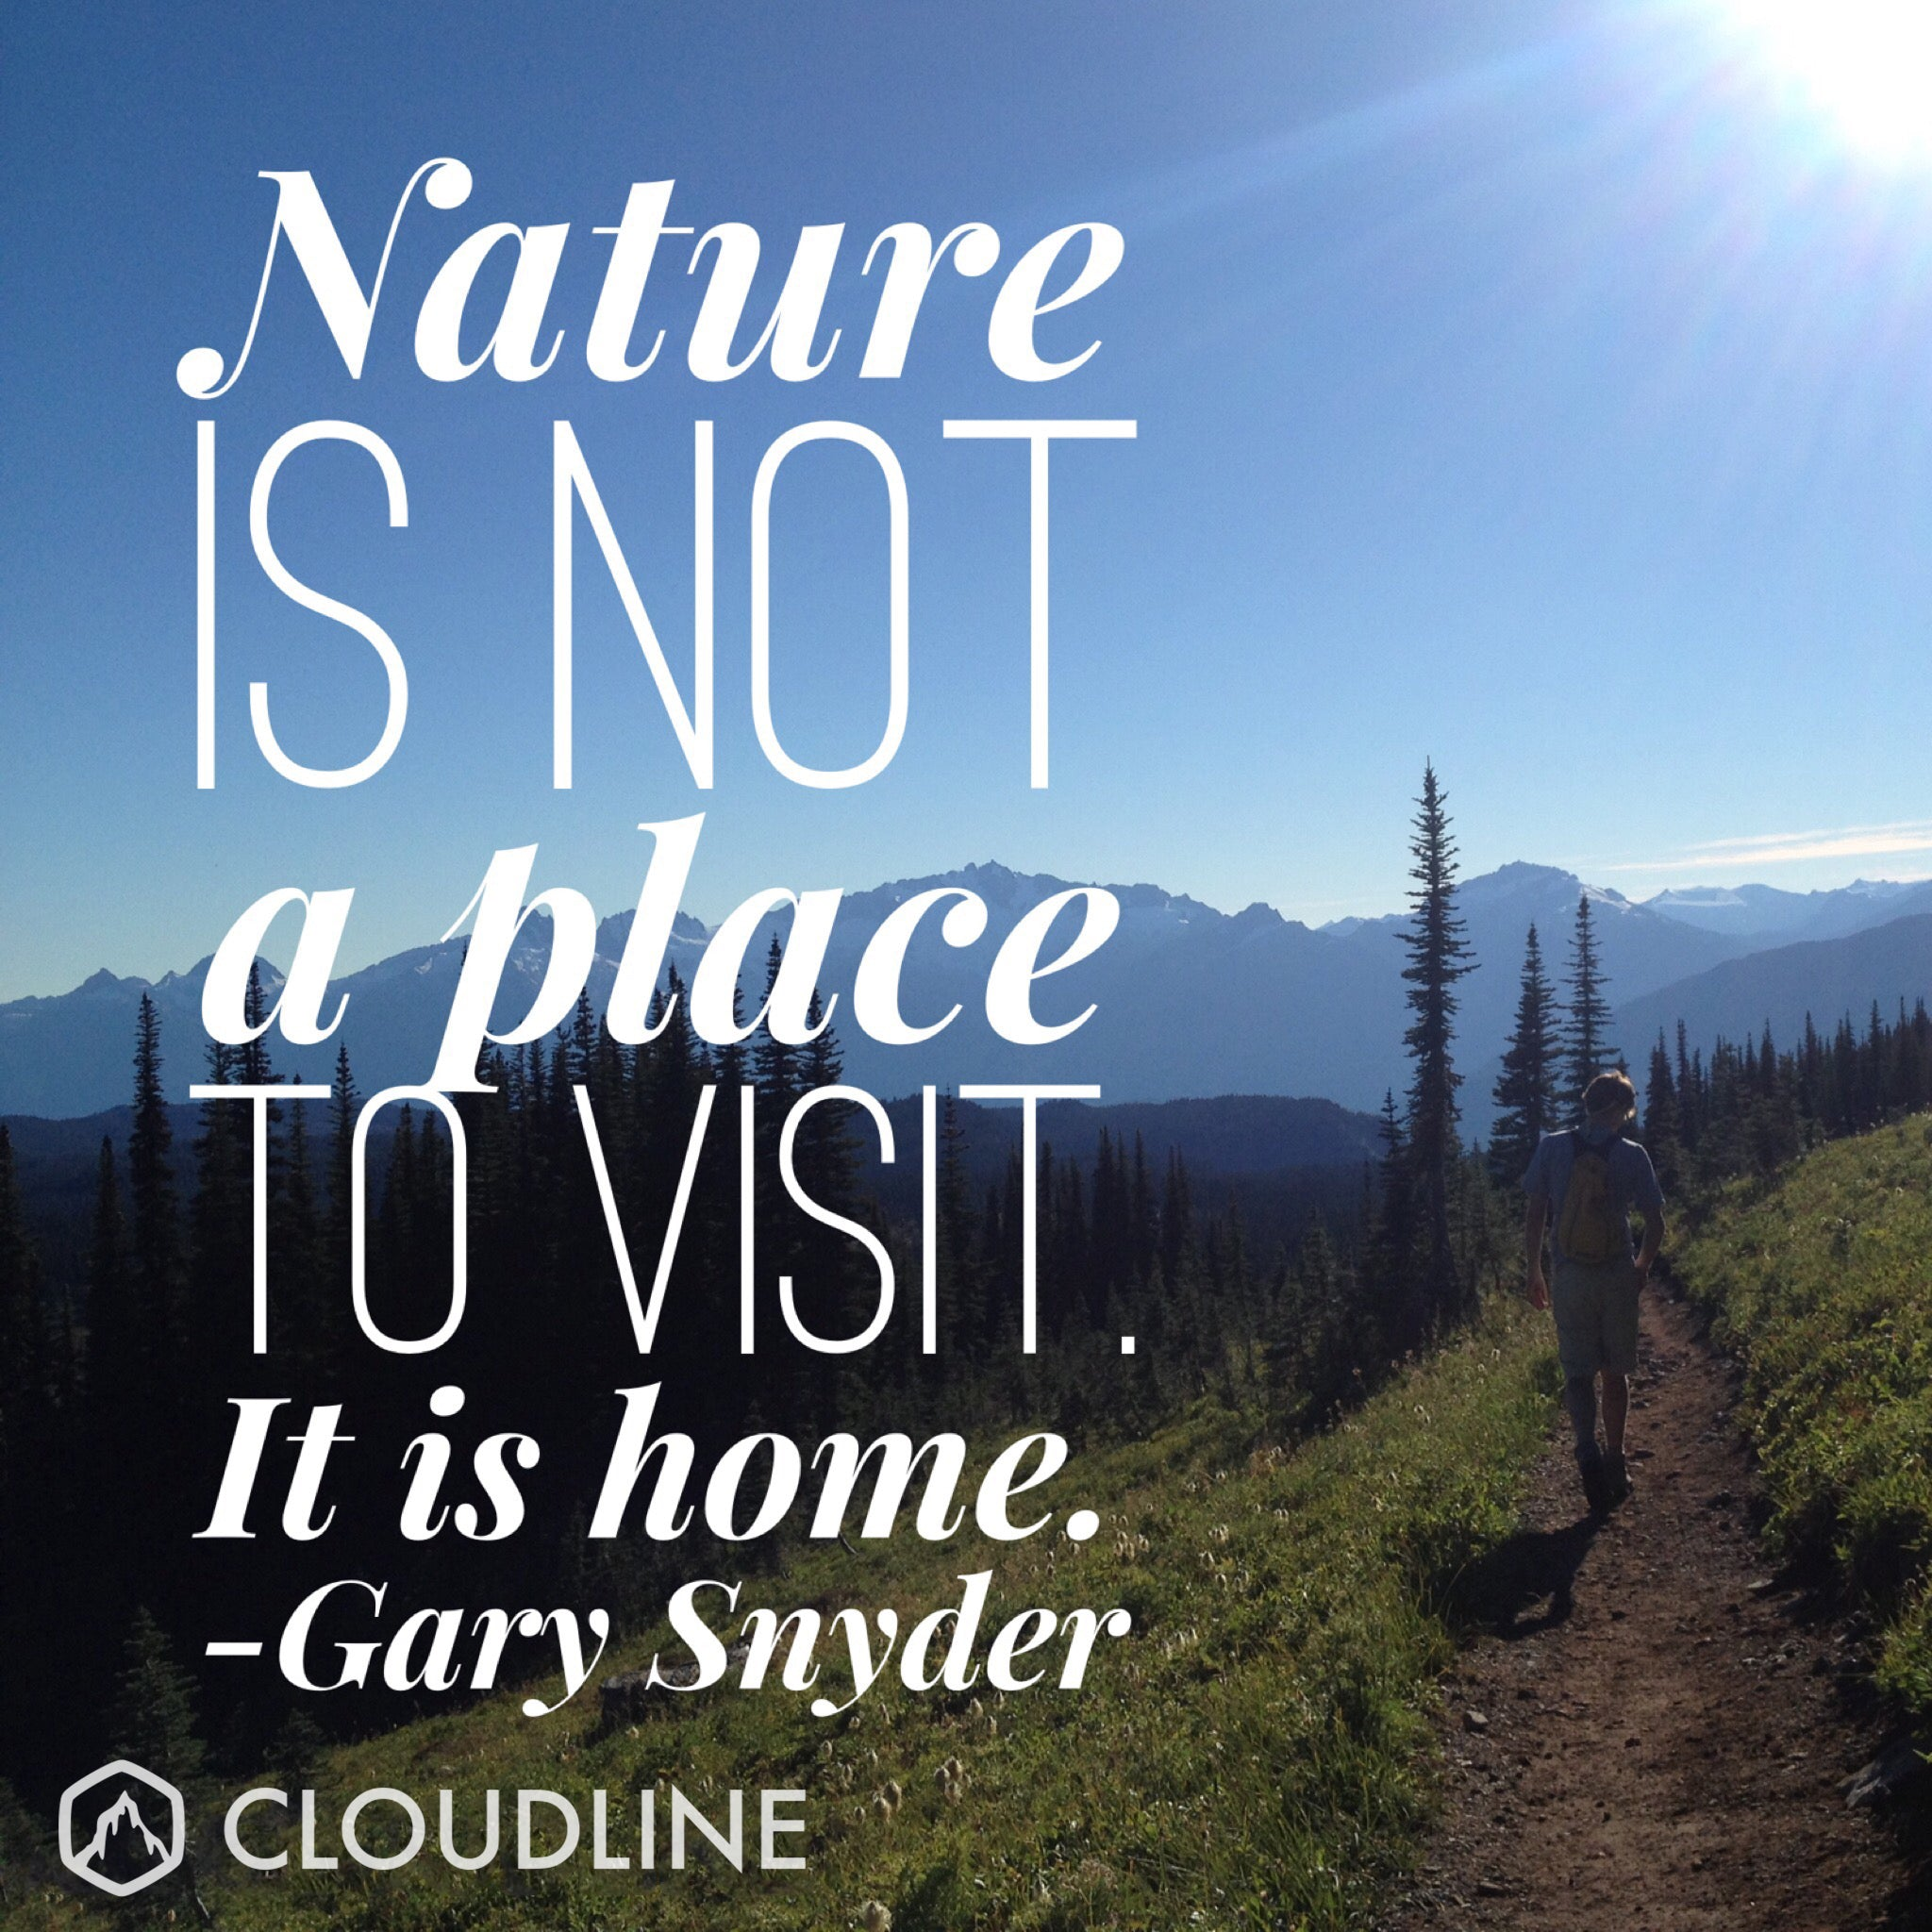 Nature is not a place to visit. It is a home. - Gary Snyder